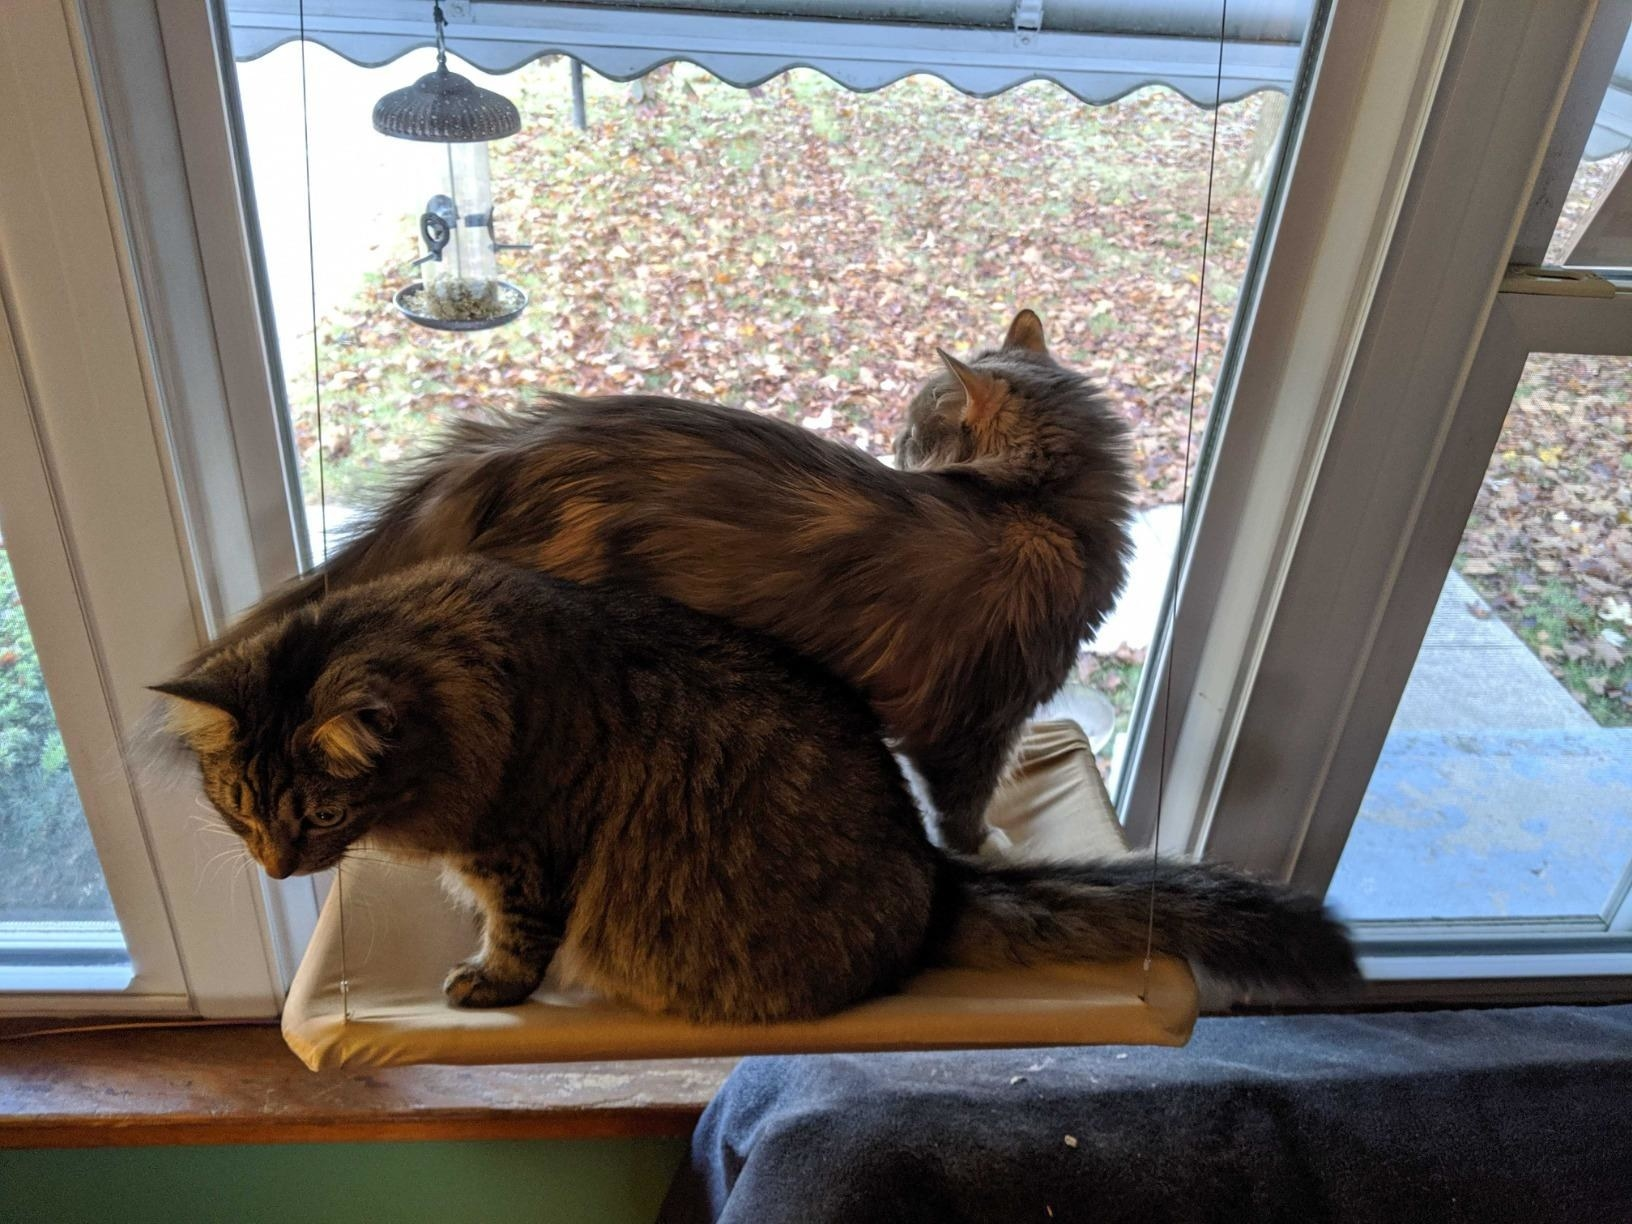 Two cats on the hammock, which is suctioned to the window